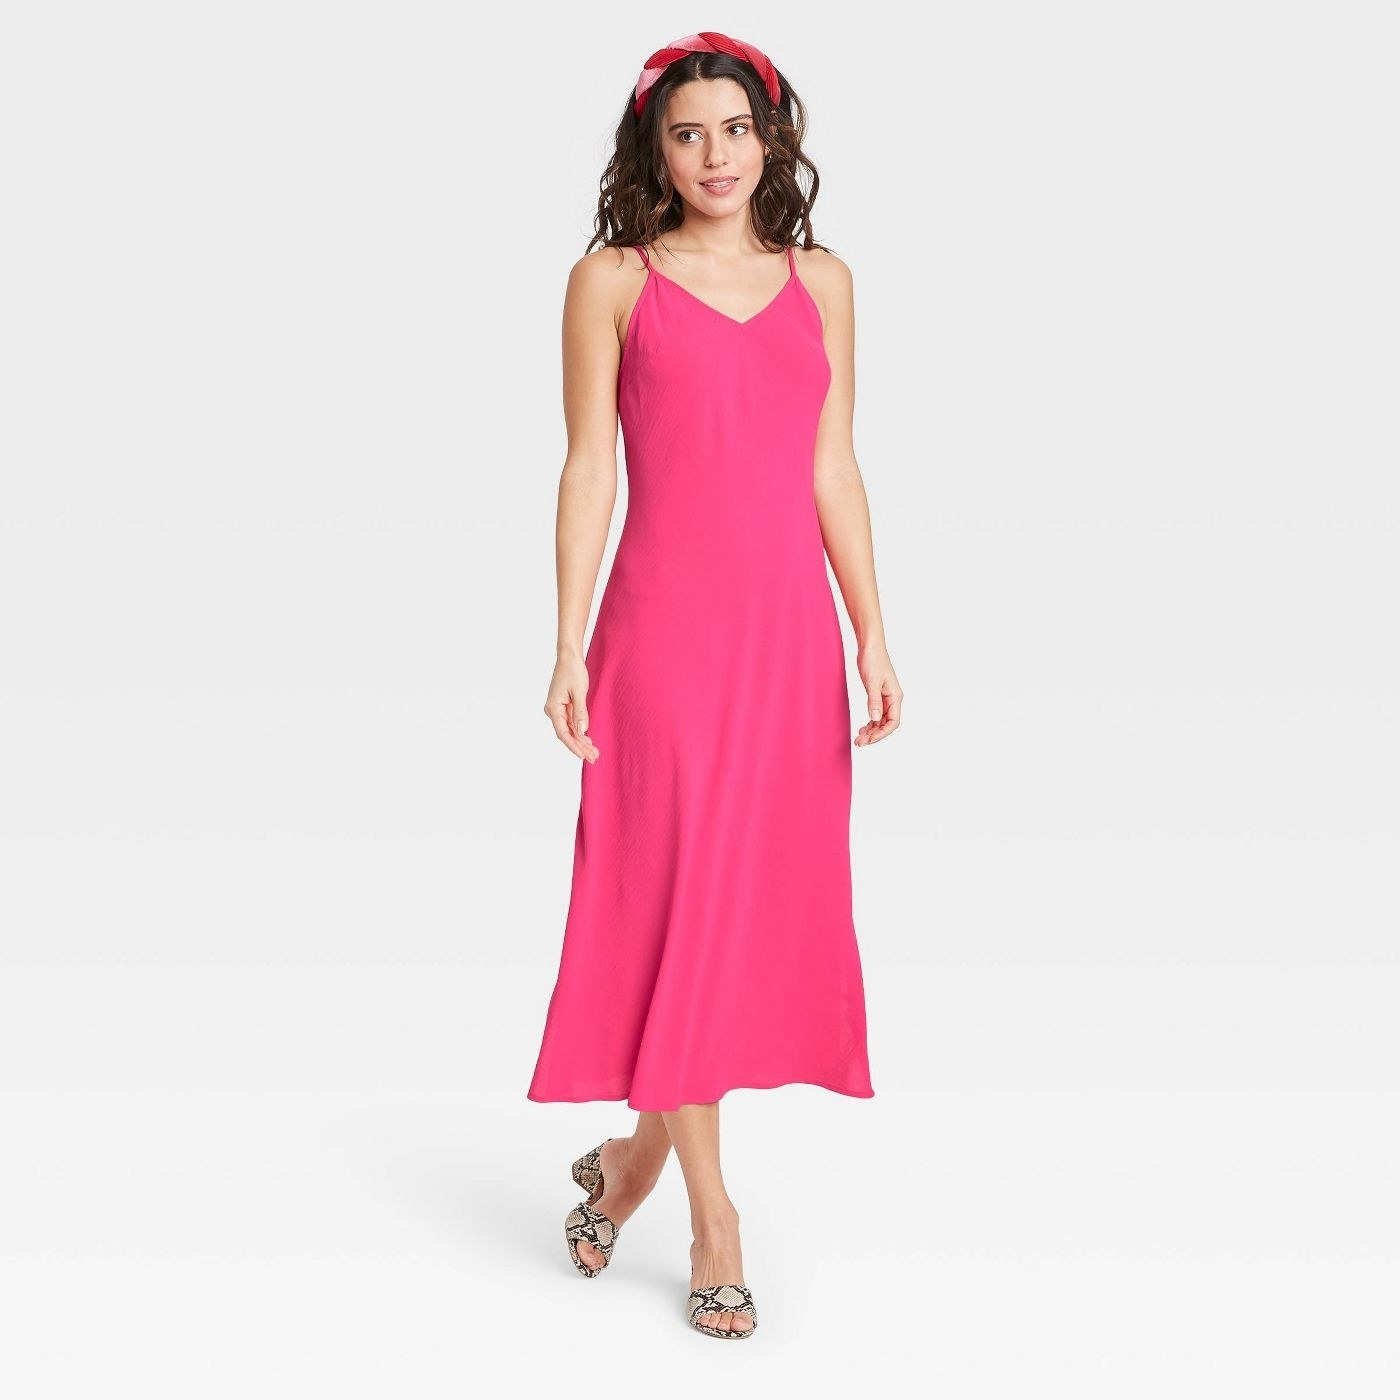 Model wearing pink dress that stop above the ankle